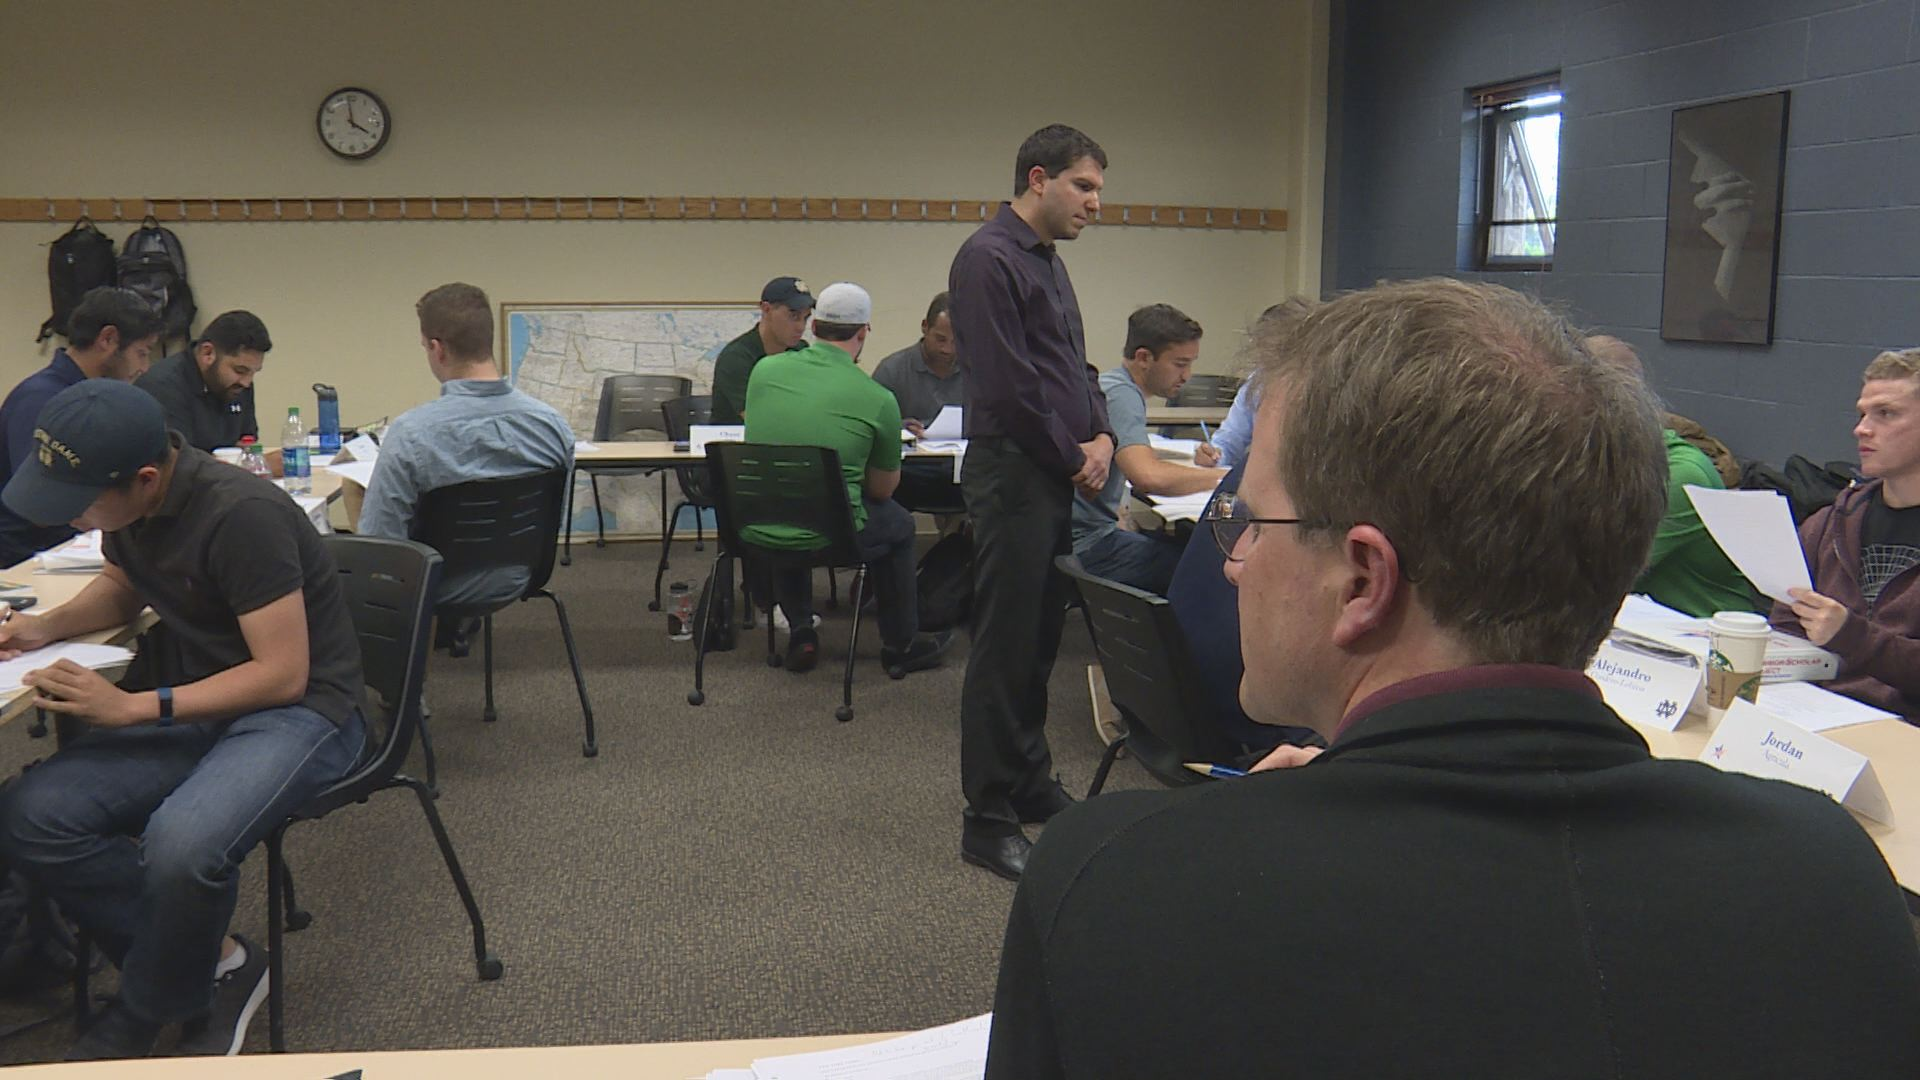 Warrior Scholar Project introduces veterans to college life at Notre Dame. // WSBT 22 photo